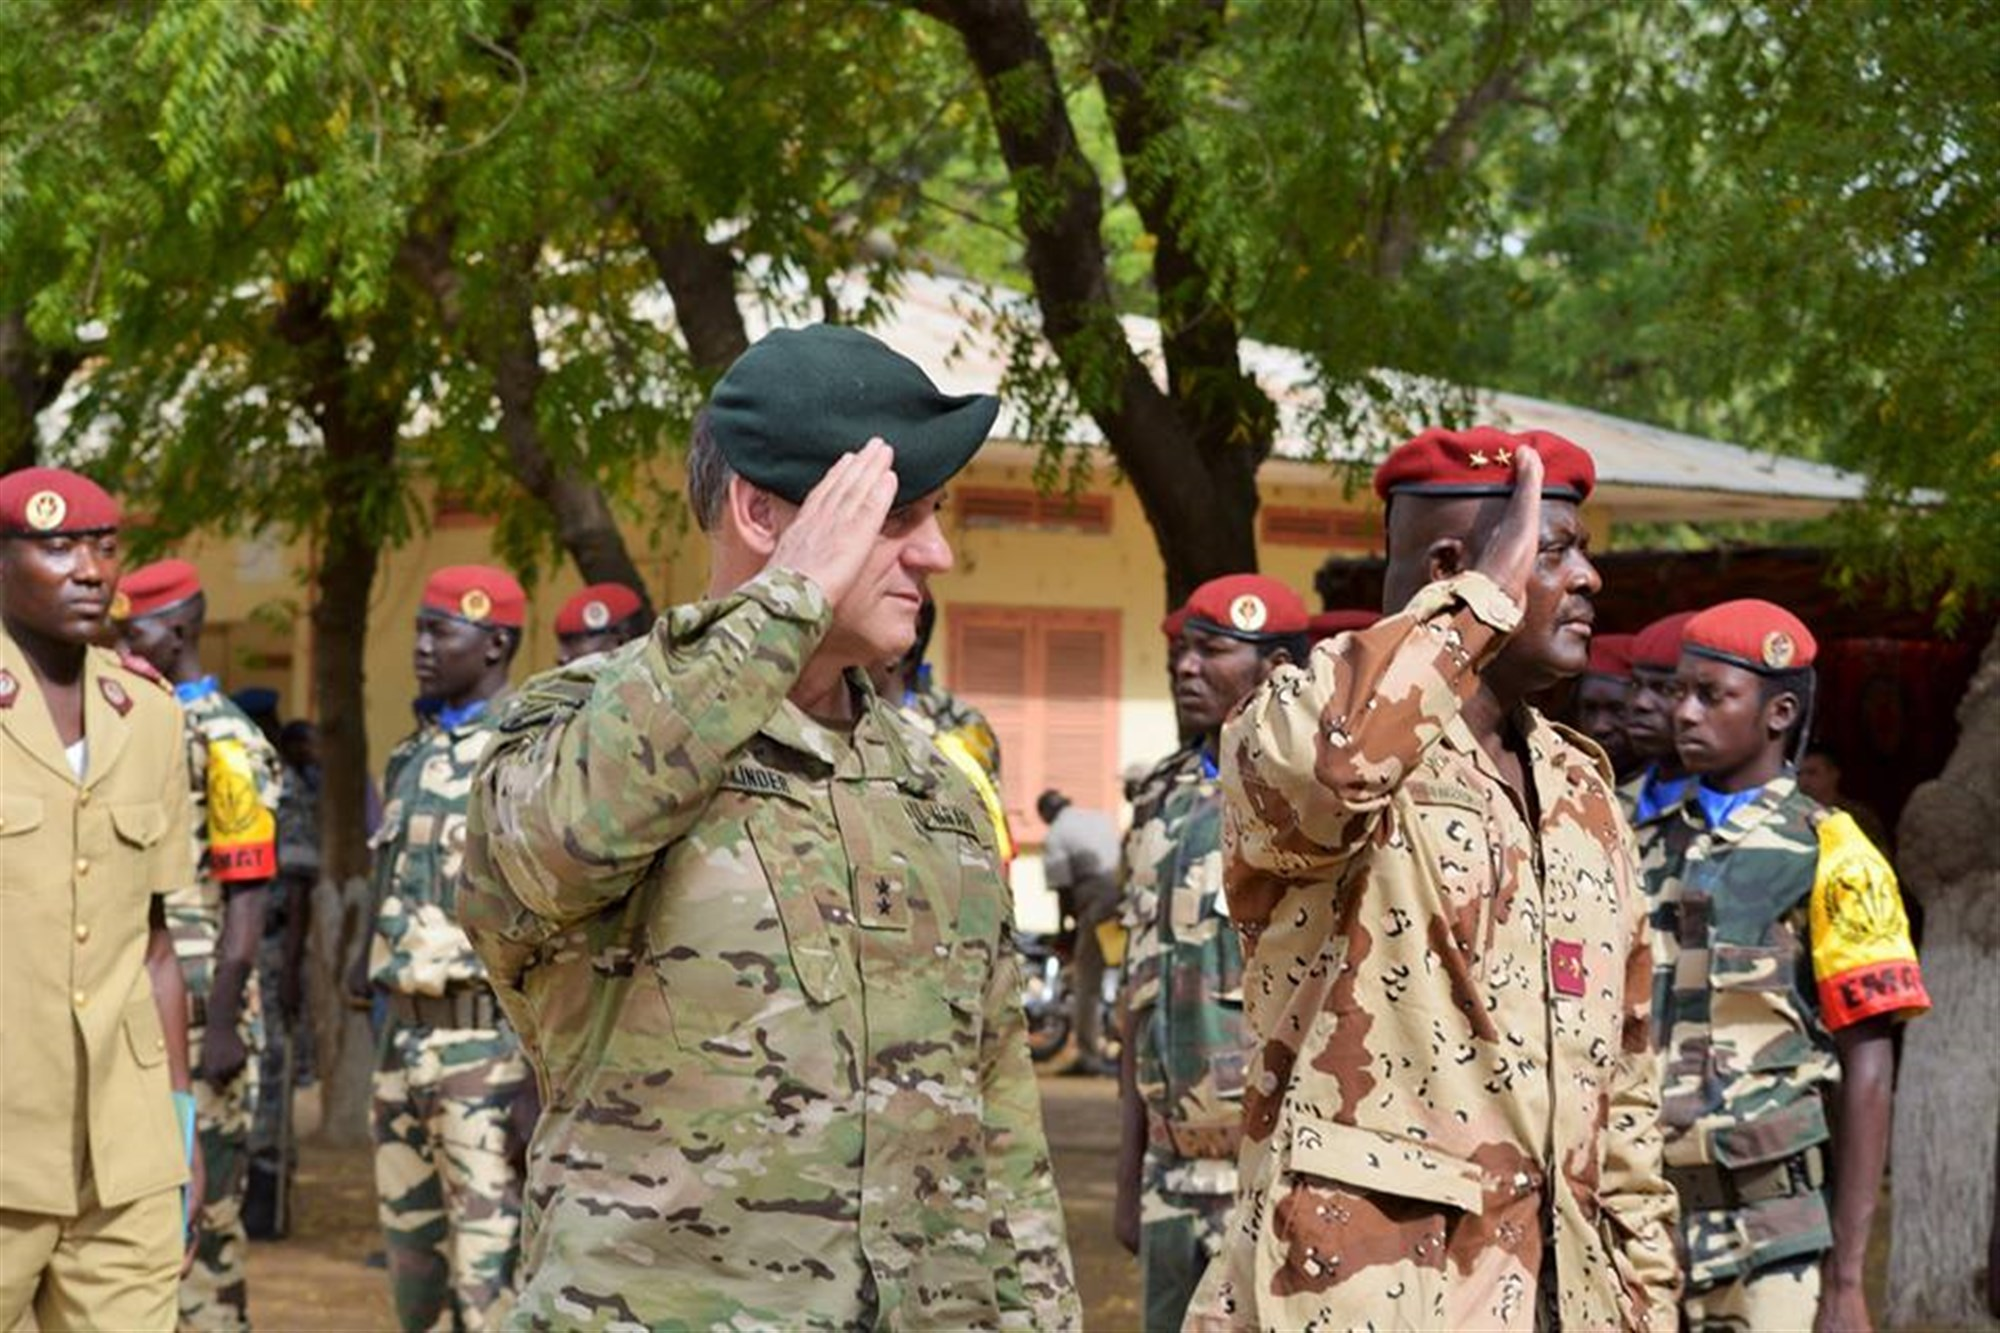 Flintlock 2015 Chadian Exercise Director, Brig. Gen. Zakaria Ngobongue (right) and U.S. Special Operations Command Africa Commanding General, U.S. Army Maj. Gen. James Linder at the closing ceremony for Flintlock in N'Djamena, Chad. (Photo by U.S. Army Sgt. 1st Class Jessica Espinosa, U.S. Special Operations Command Africa/RELEASED)